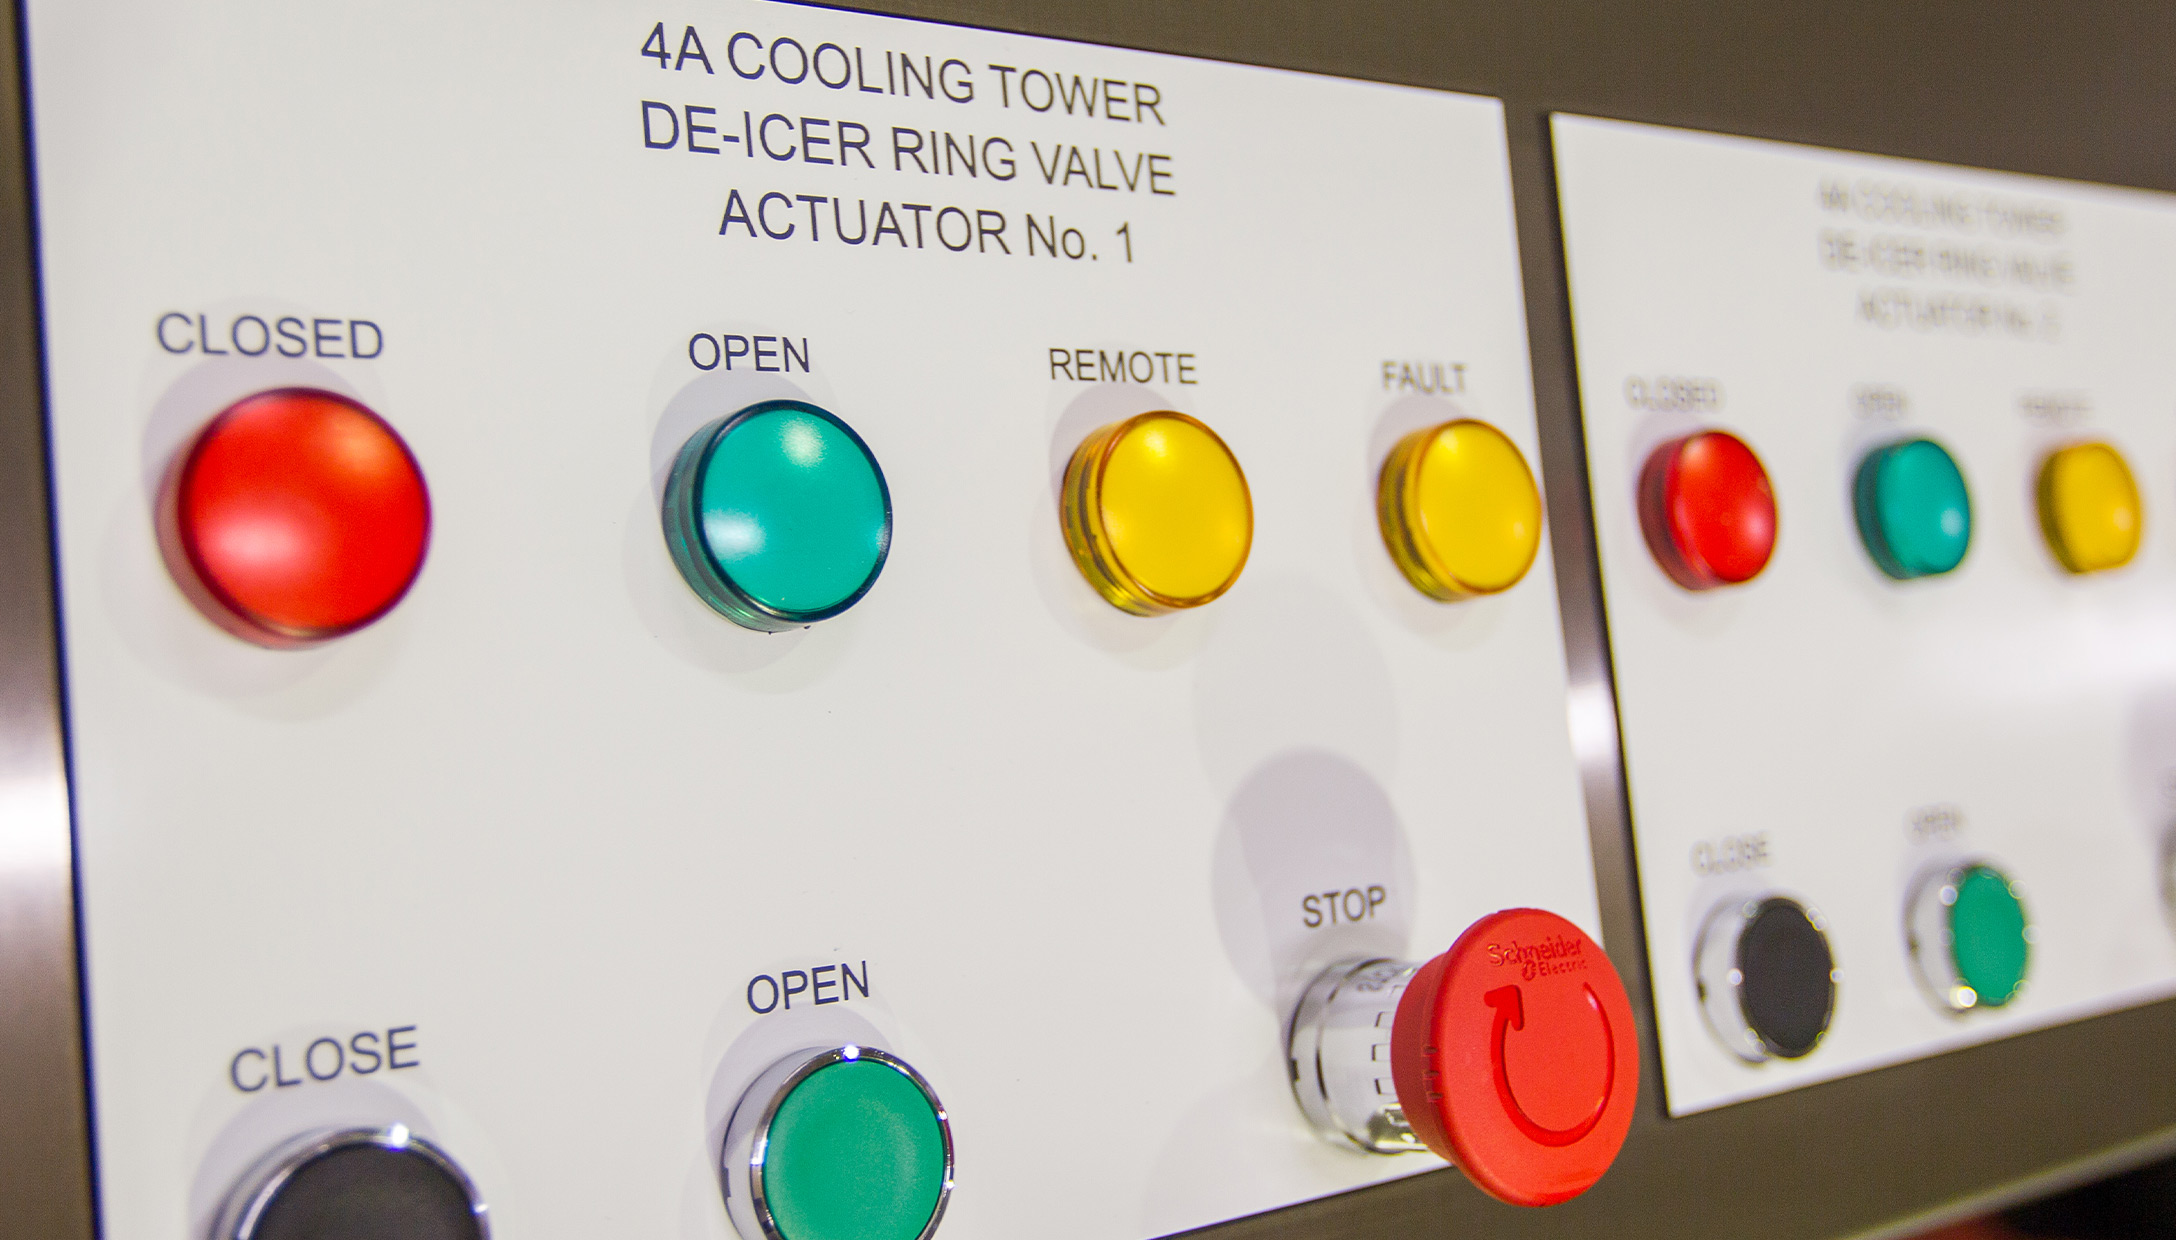 images/Control-Panels-Slide.jpg